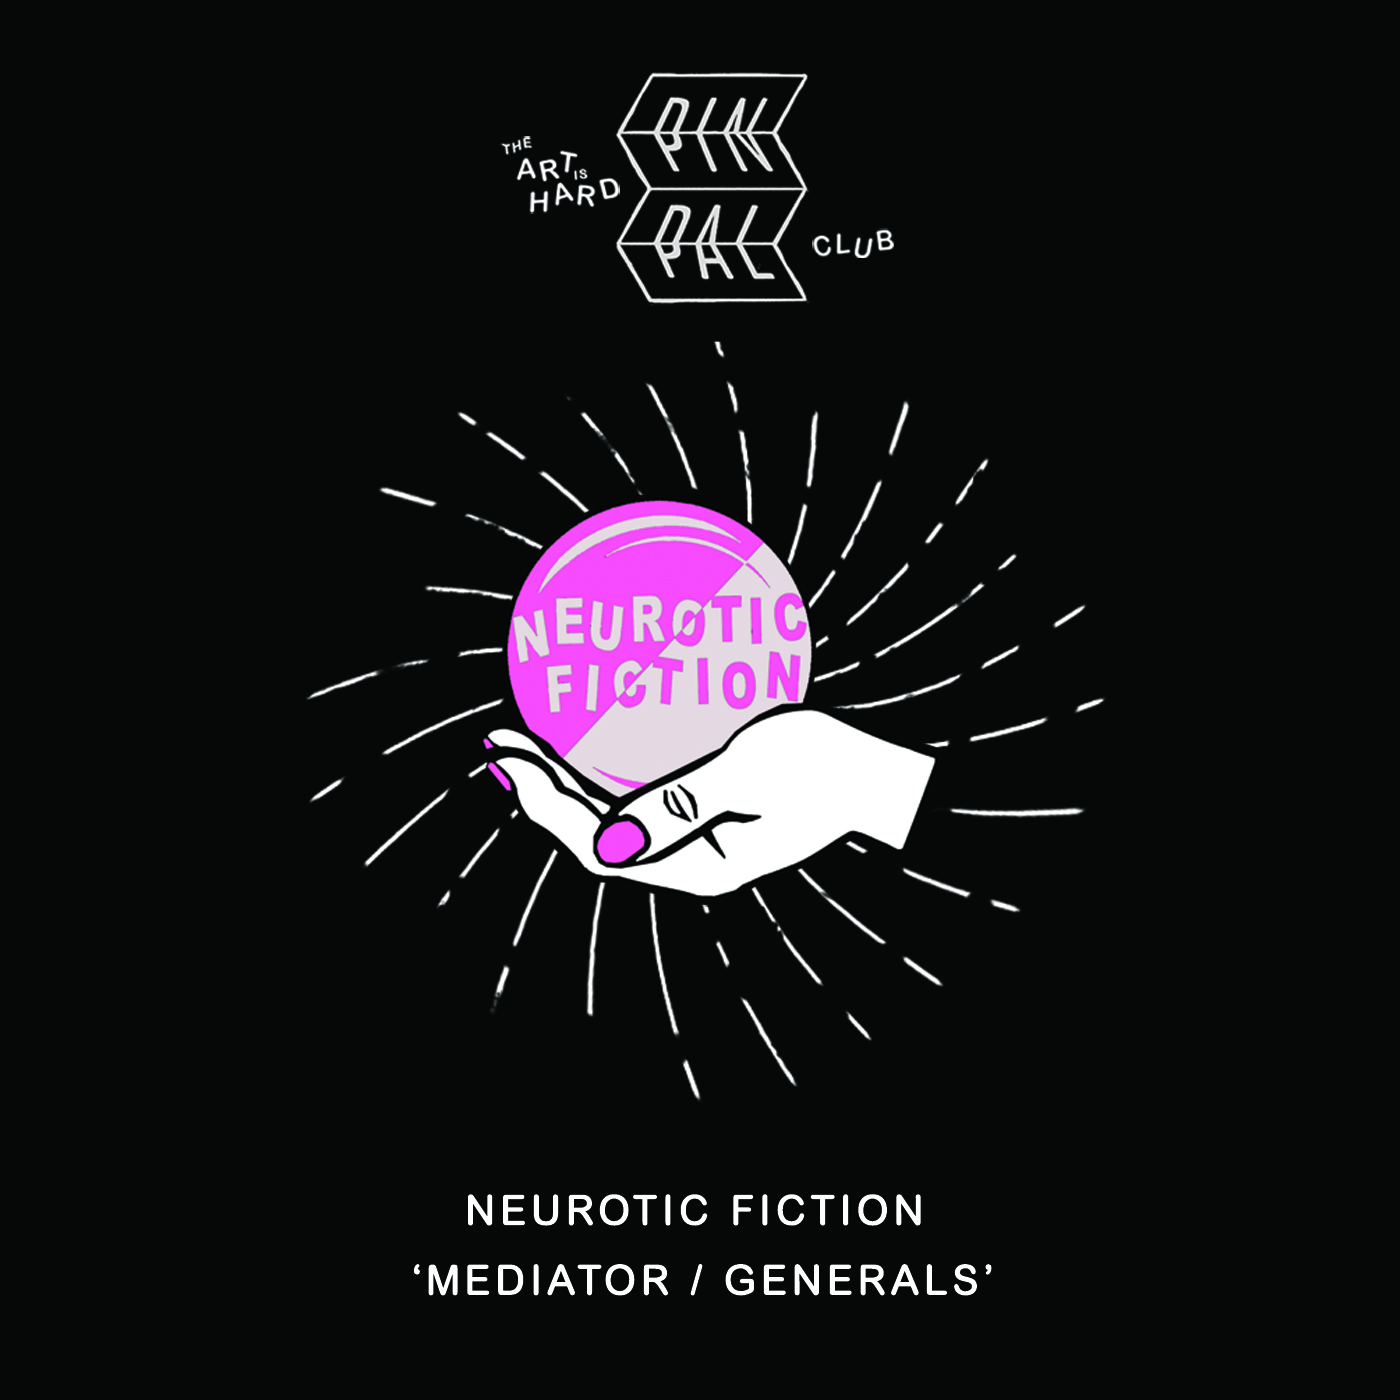 Neurotic Fiction - Mediator / Generals (1